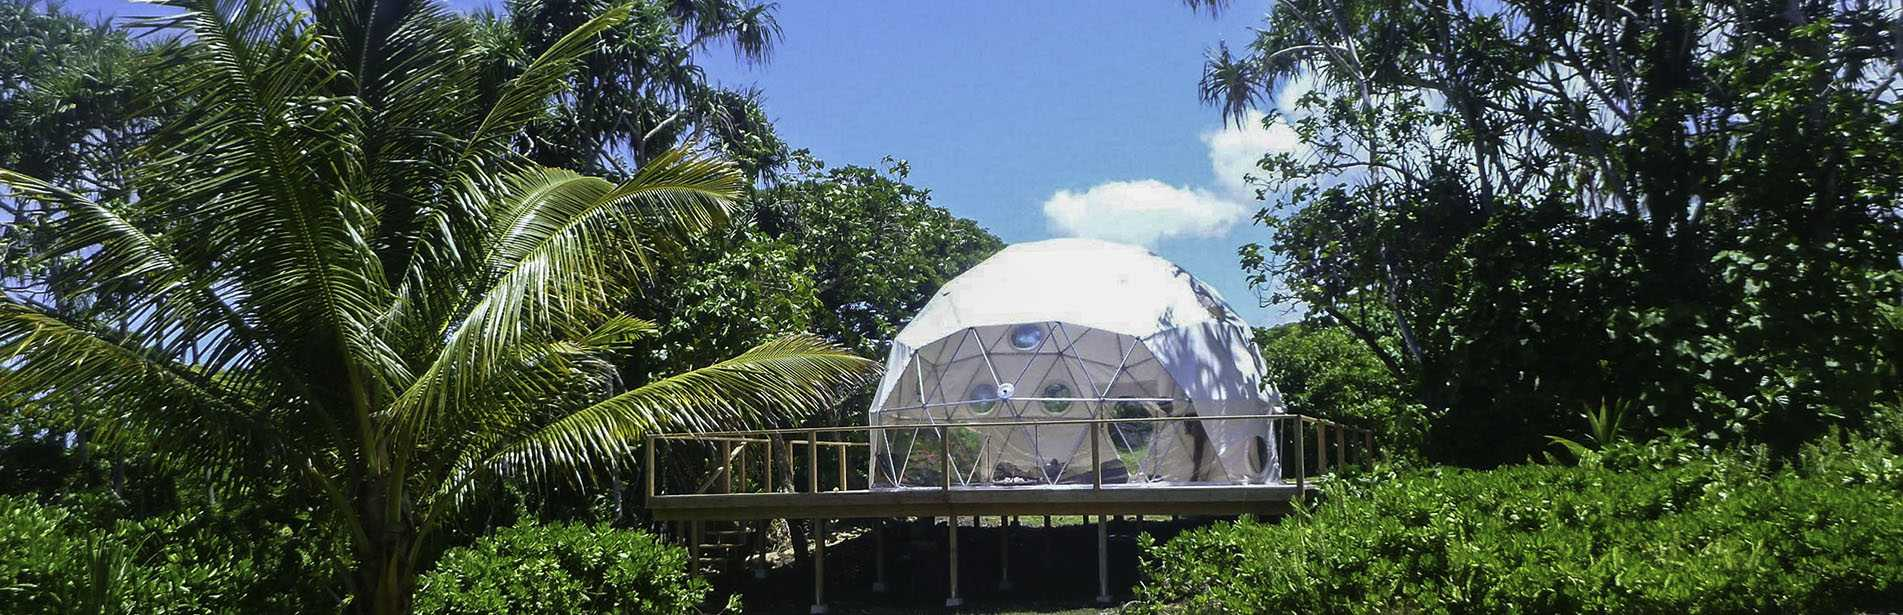 24ft Dome in Hawaii - Pacific Domes